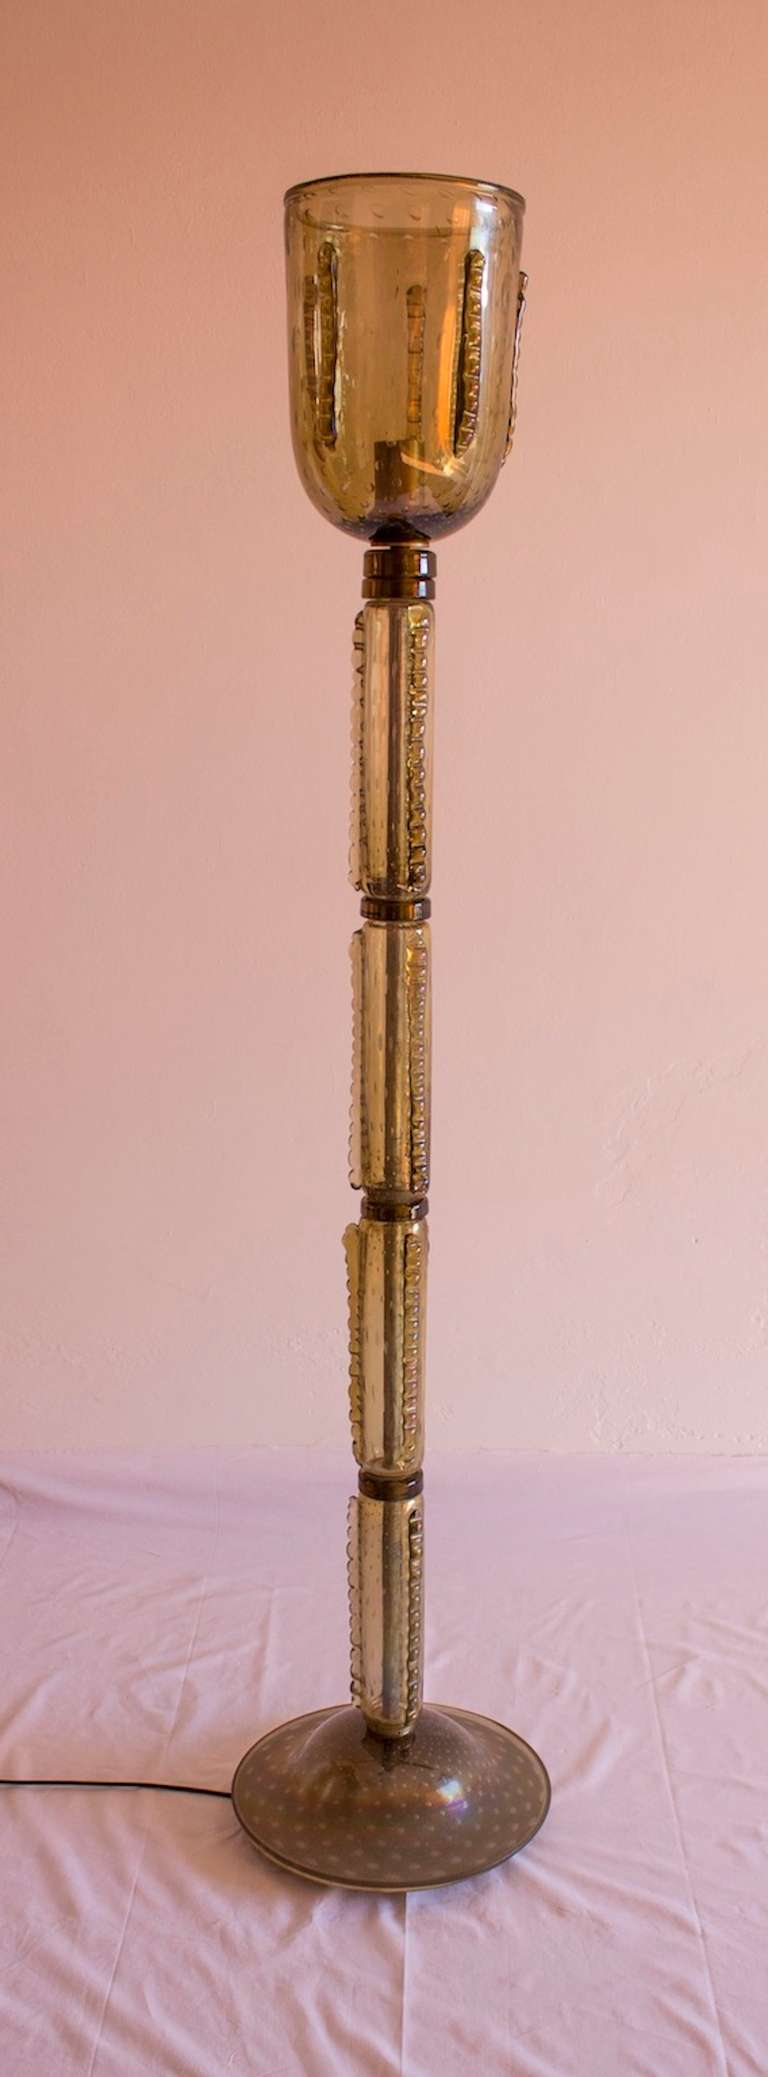 Murano floor lamp circa 1970s at 1stdibs for 1970s floor lamps